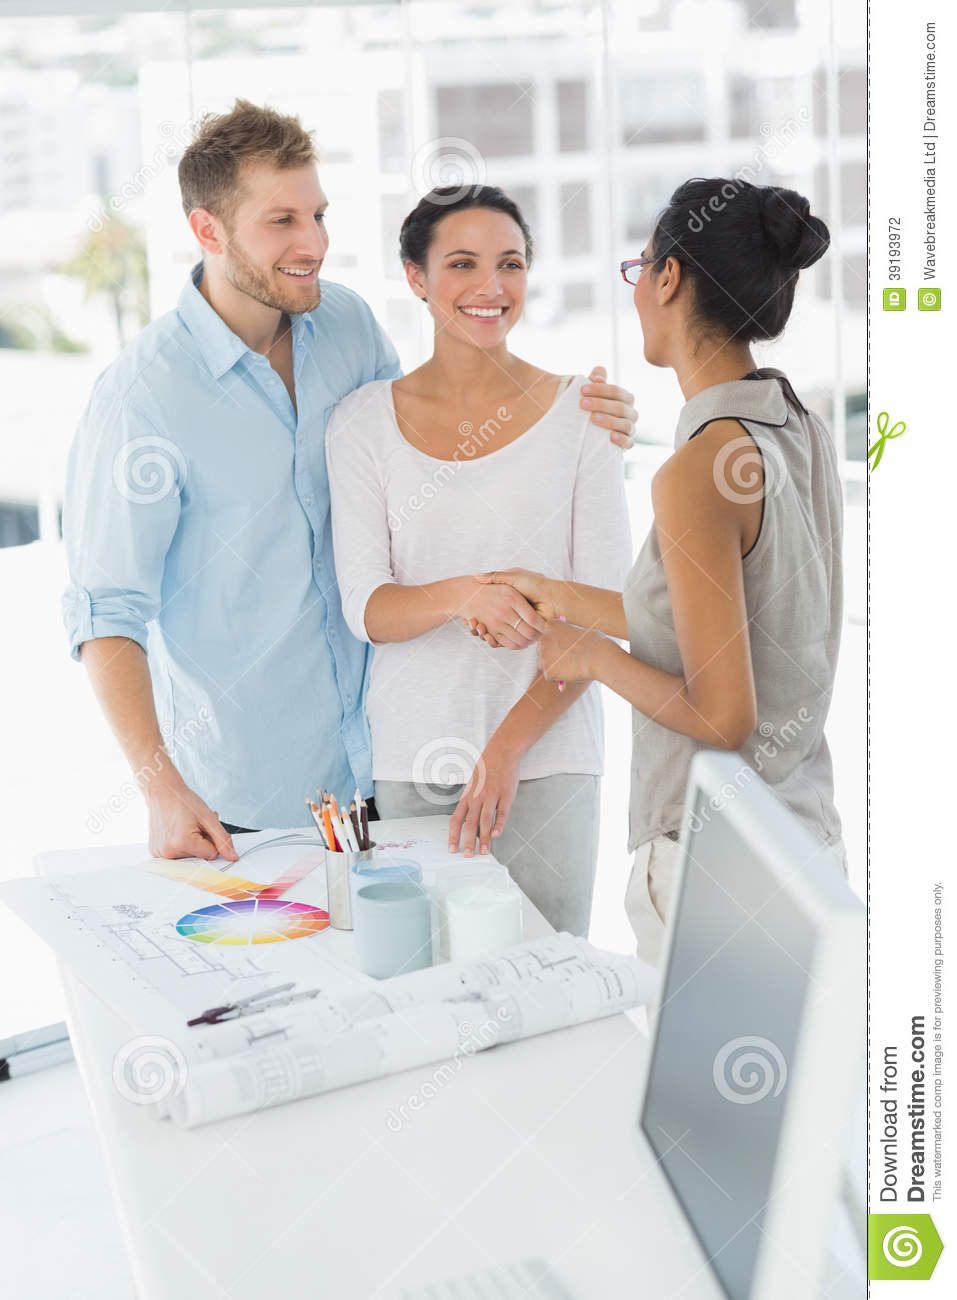 Interior Designer Shaking Hands With Smiling Client Stock